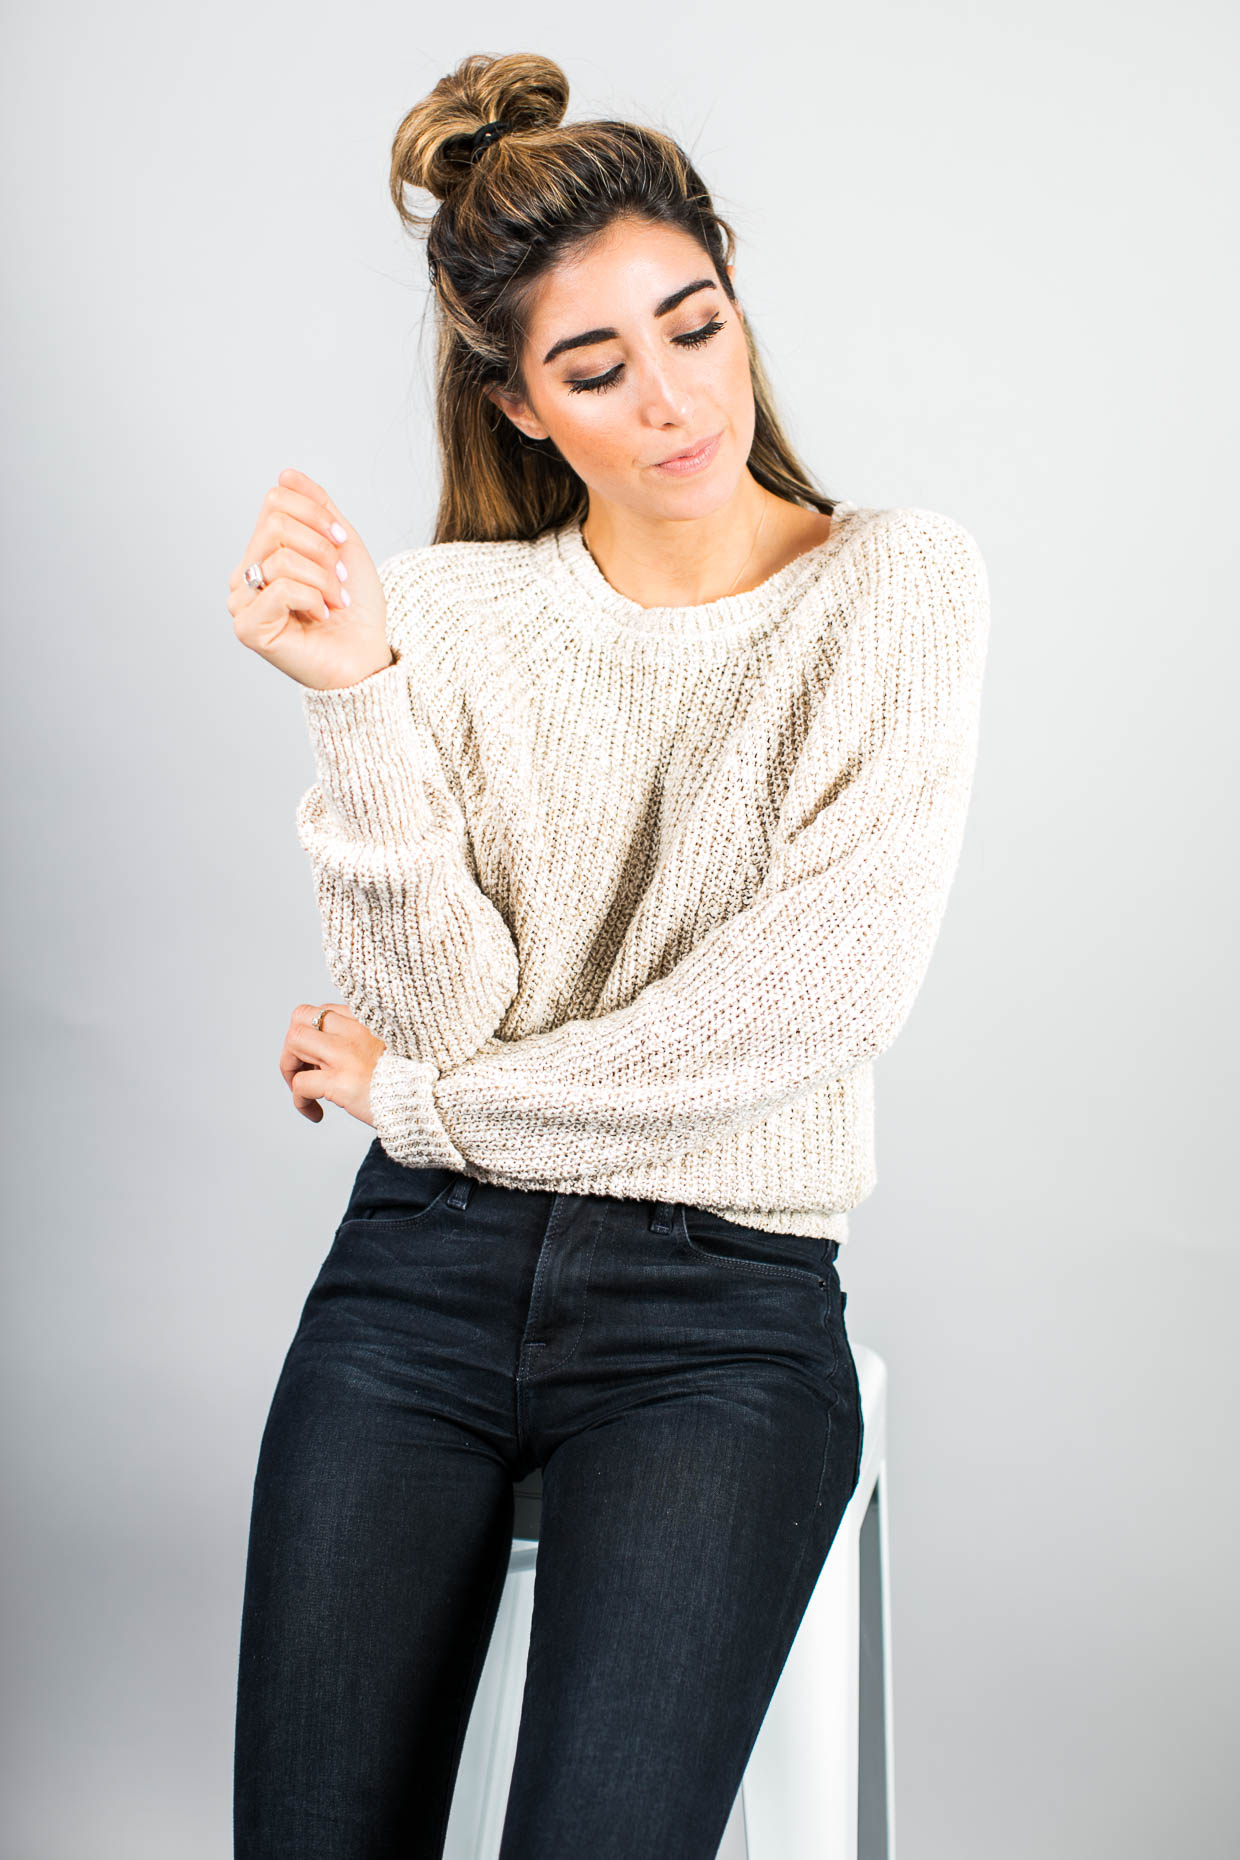 Fashion blogger The Darling Detail wears Free People Electric City Pullover Sweater, FRAME 'Le High Skinny' High Rise Crop Jeans (Sterling), Larsson & Jennings 'Lugano' Mesh Strap Watch, and Petite Albion Ring with Morganite and Diamonds